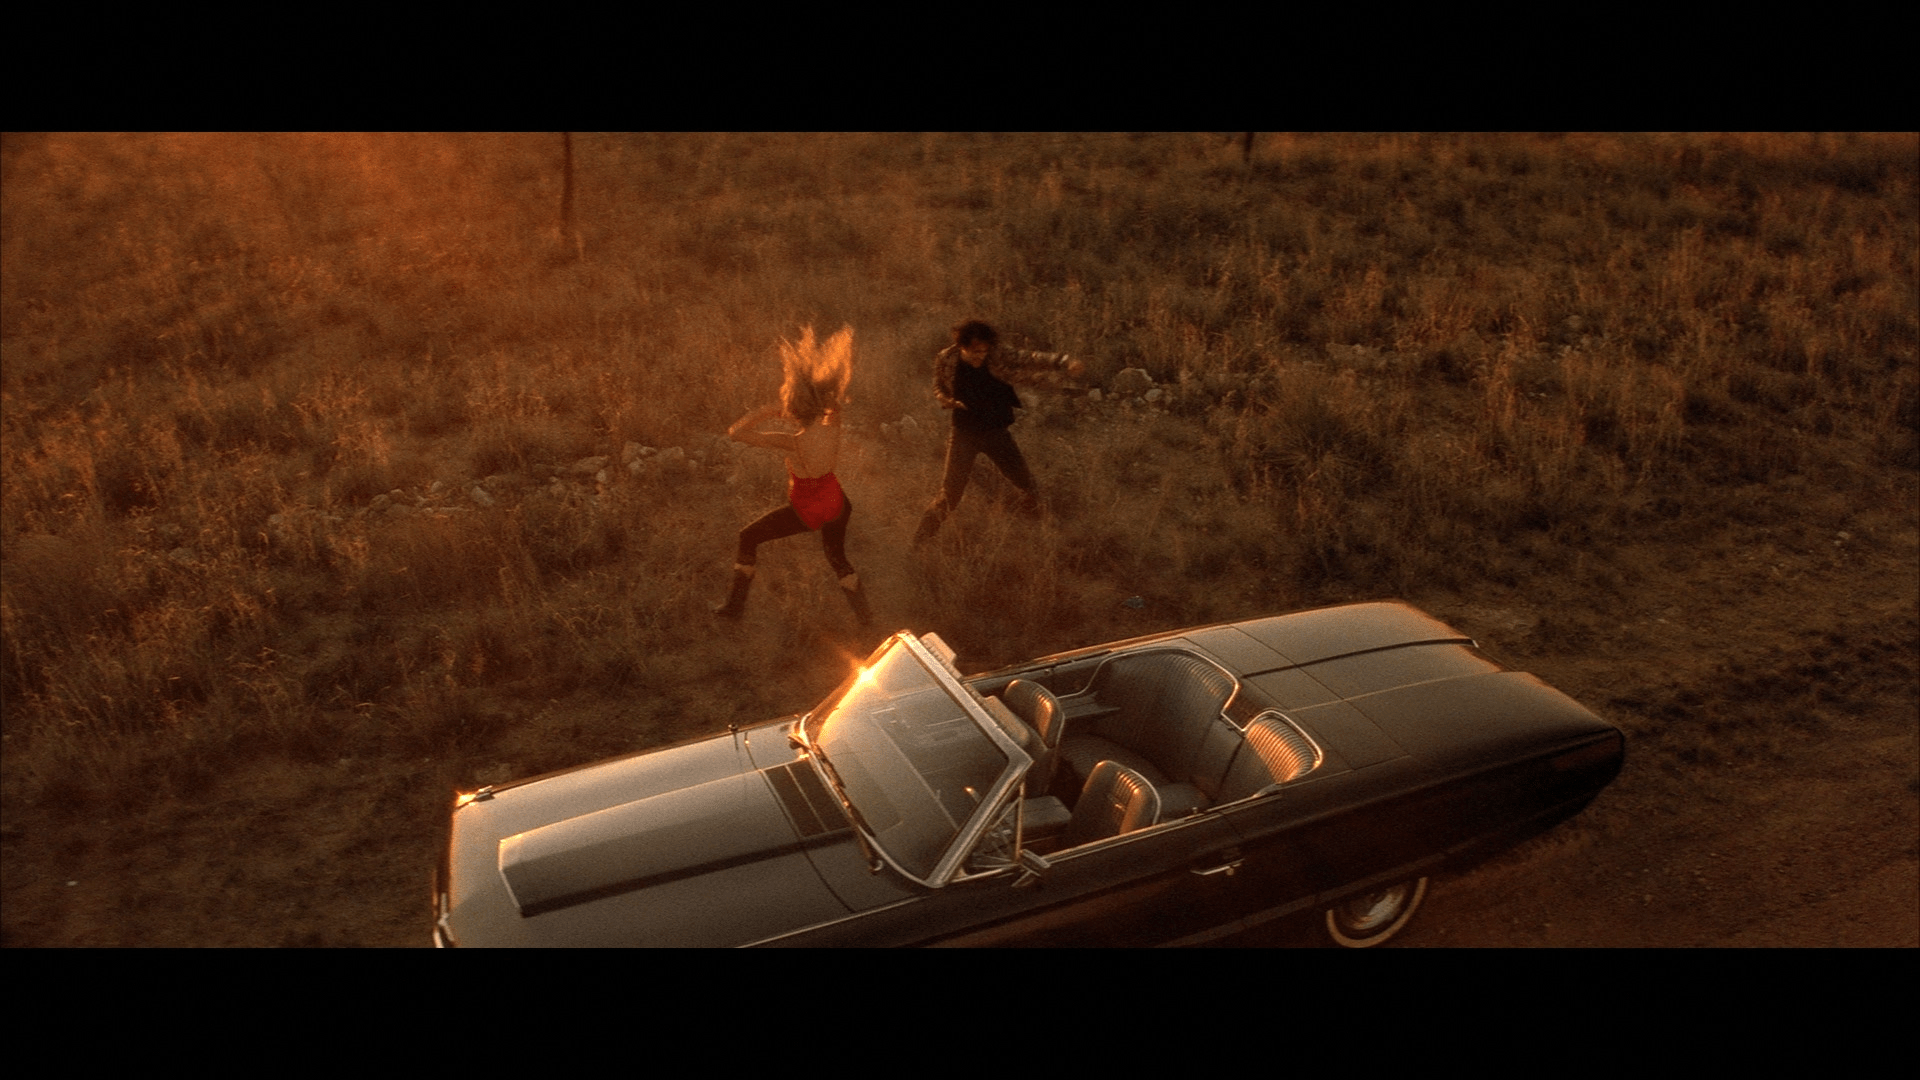 A still from the film Wild At Heart.